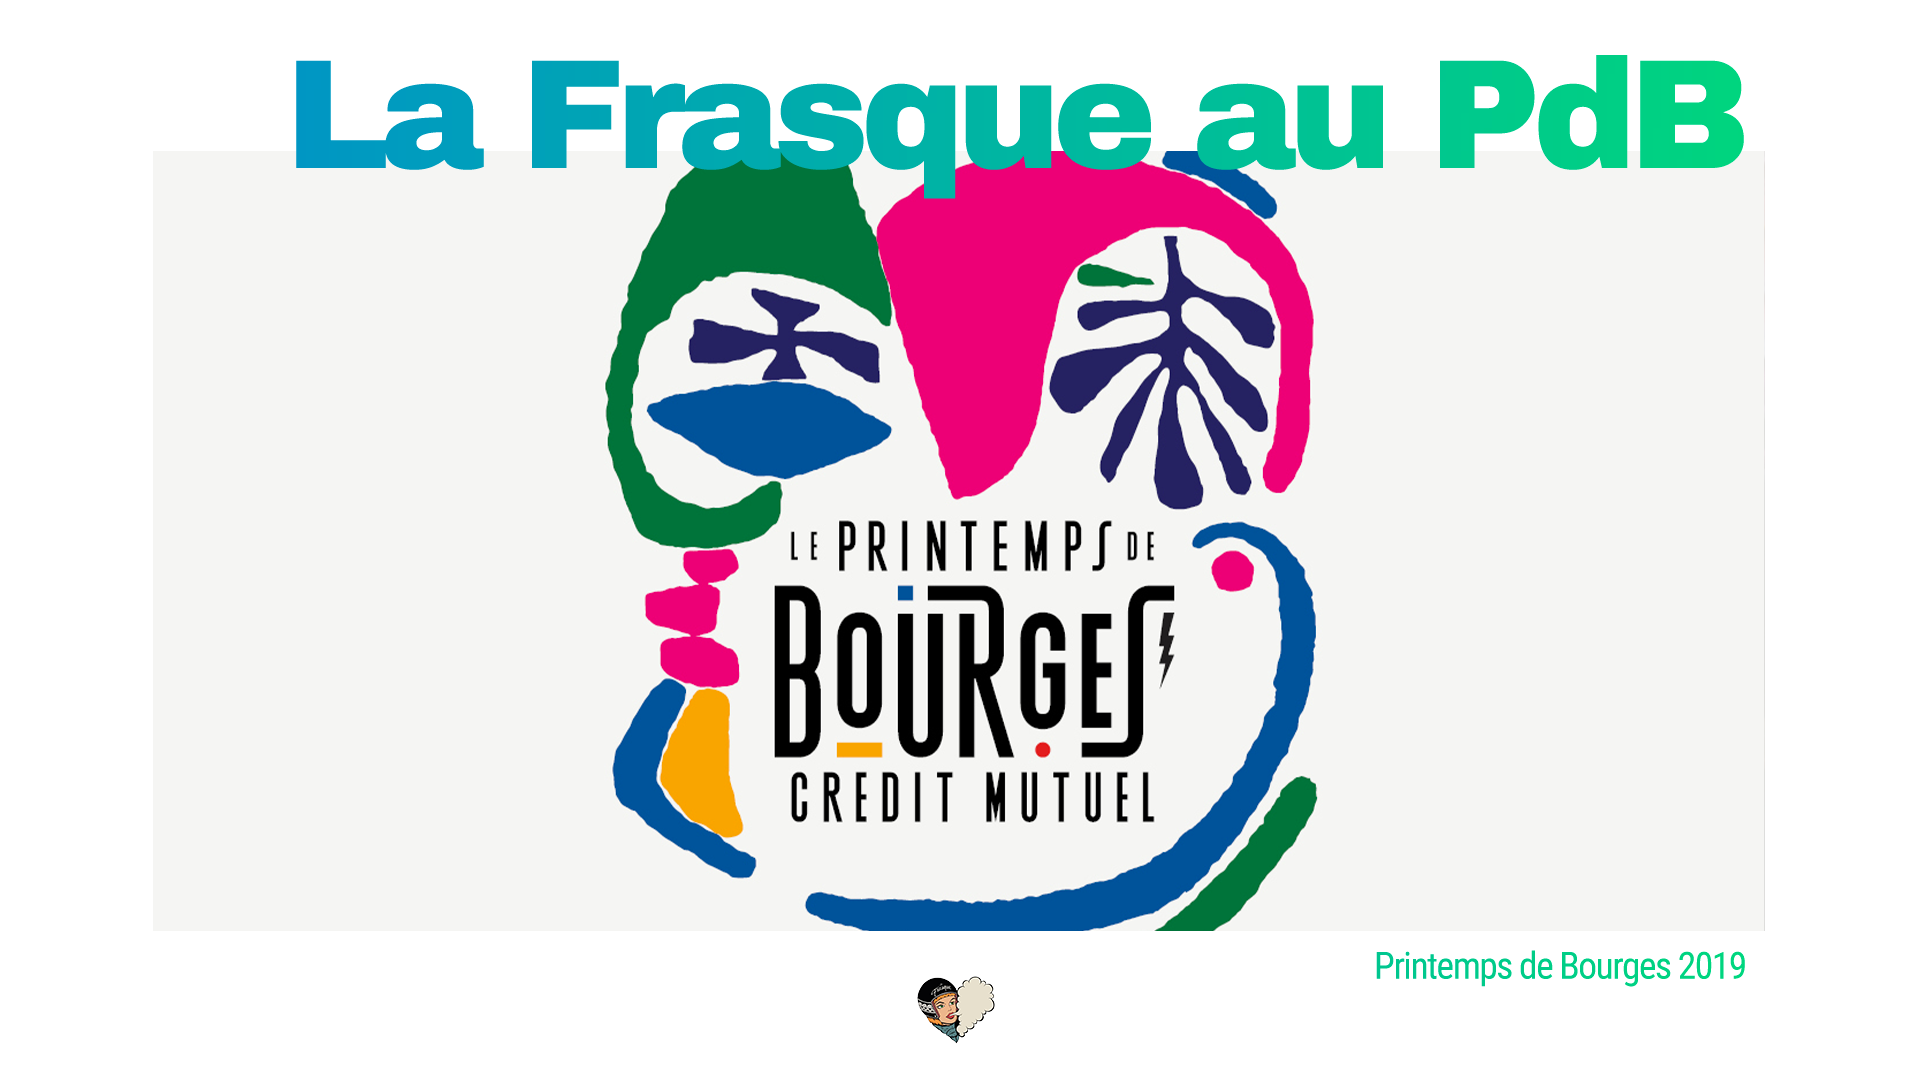 La Frasque au Printemps de Bourges 2019